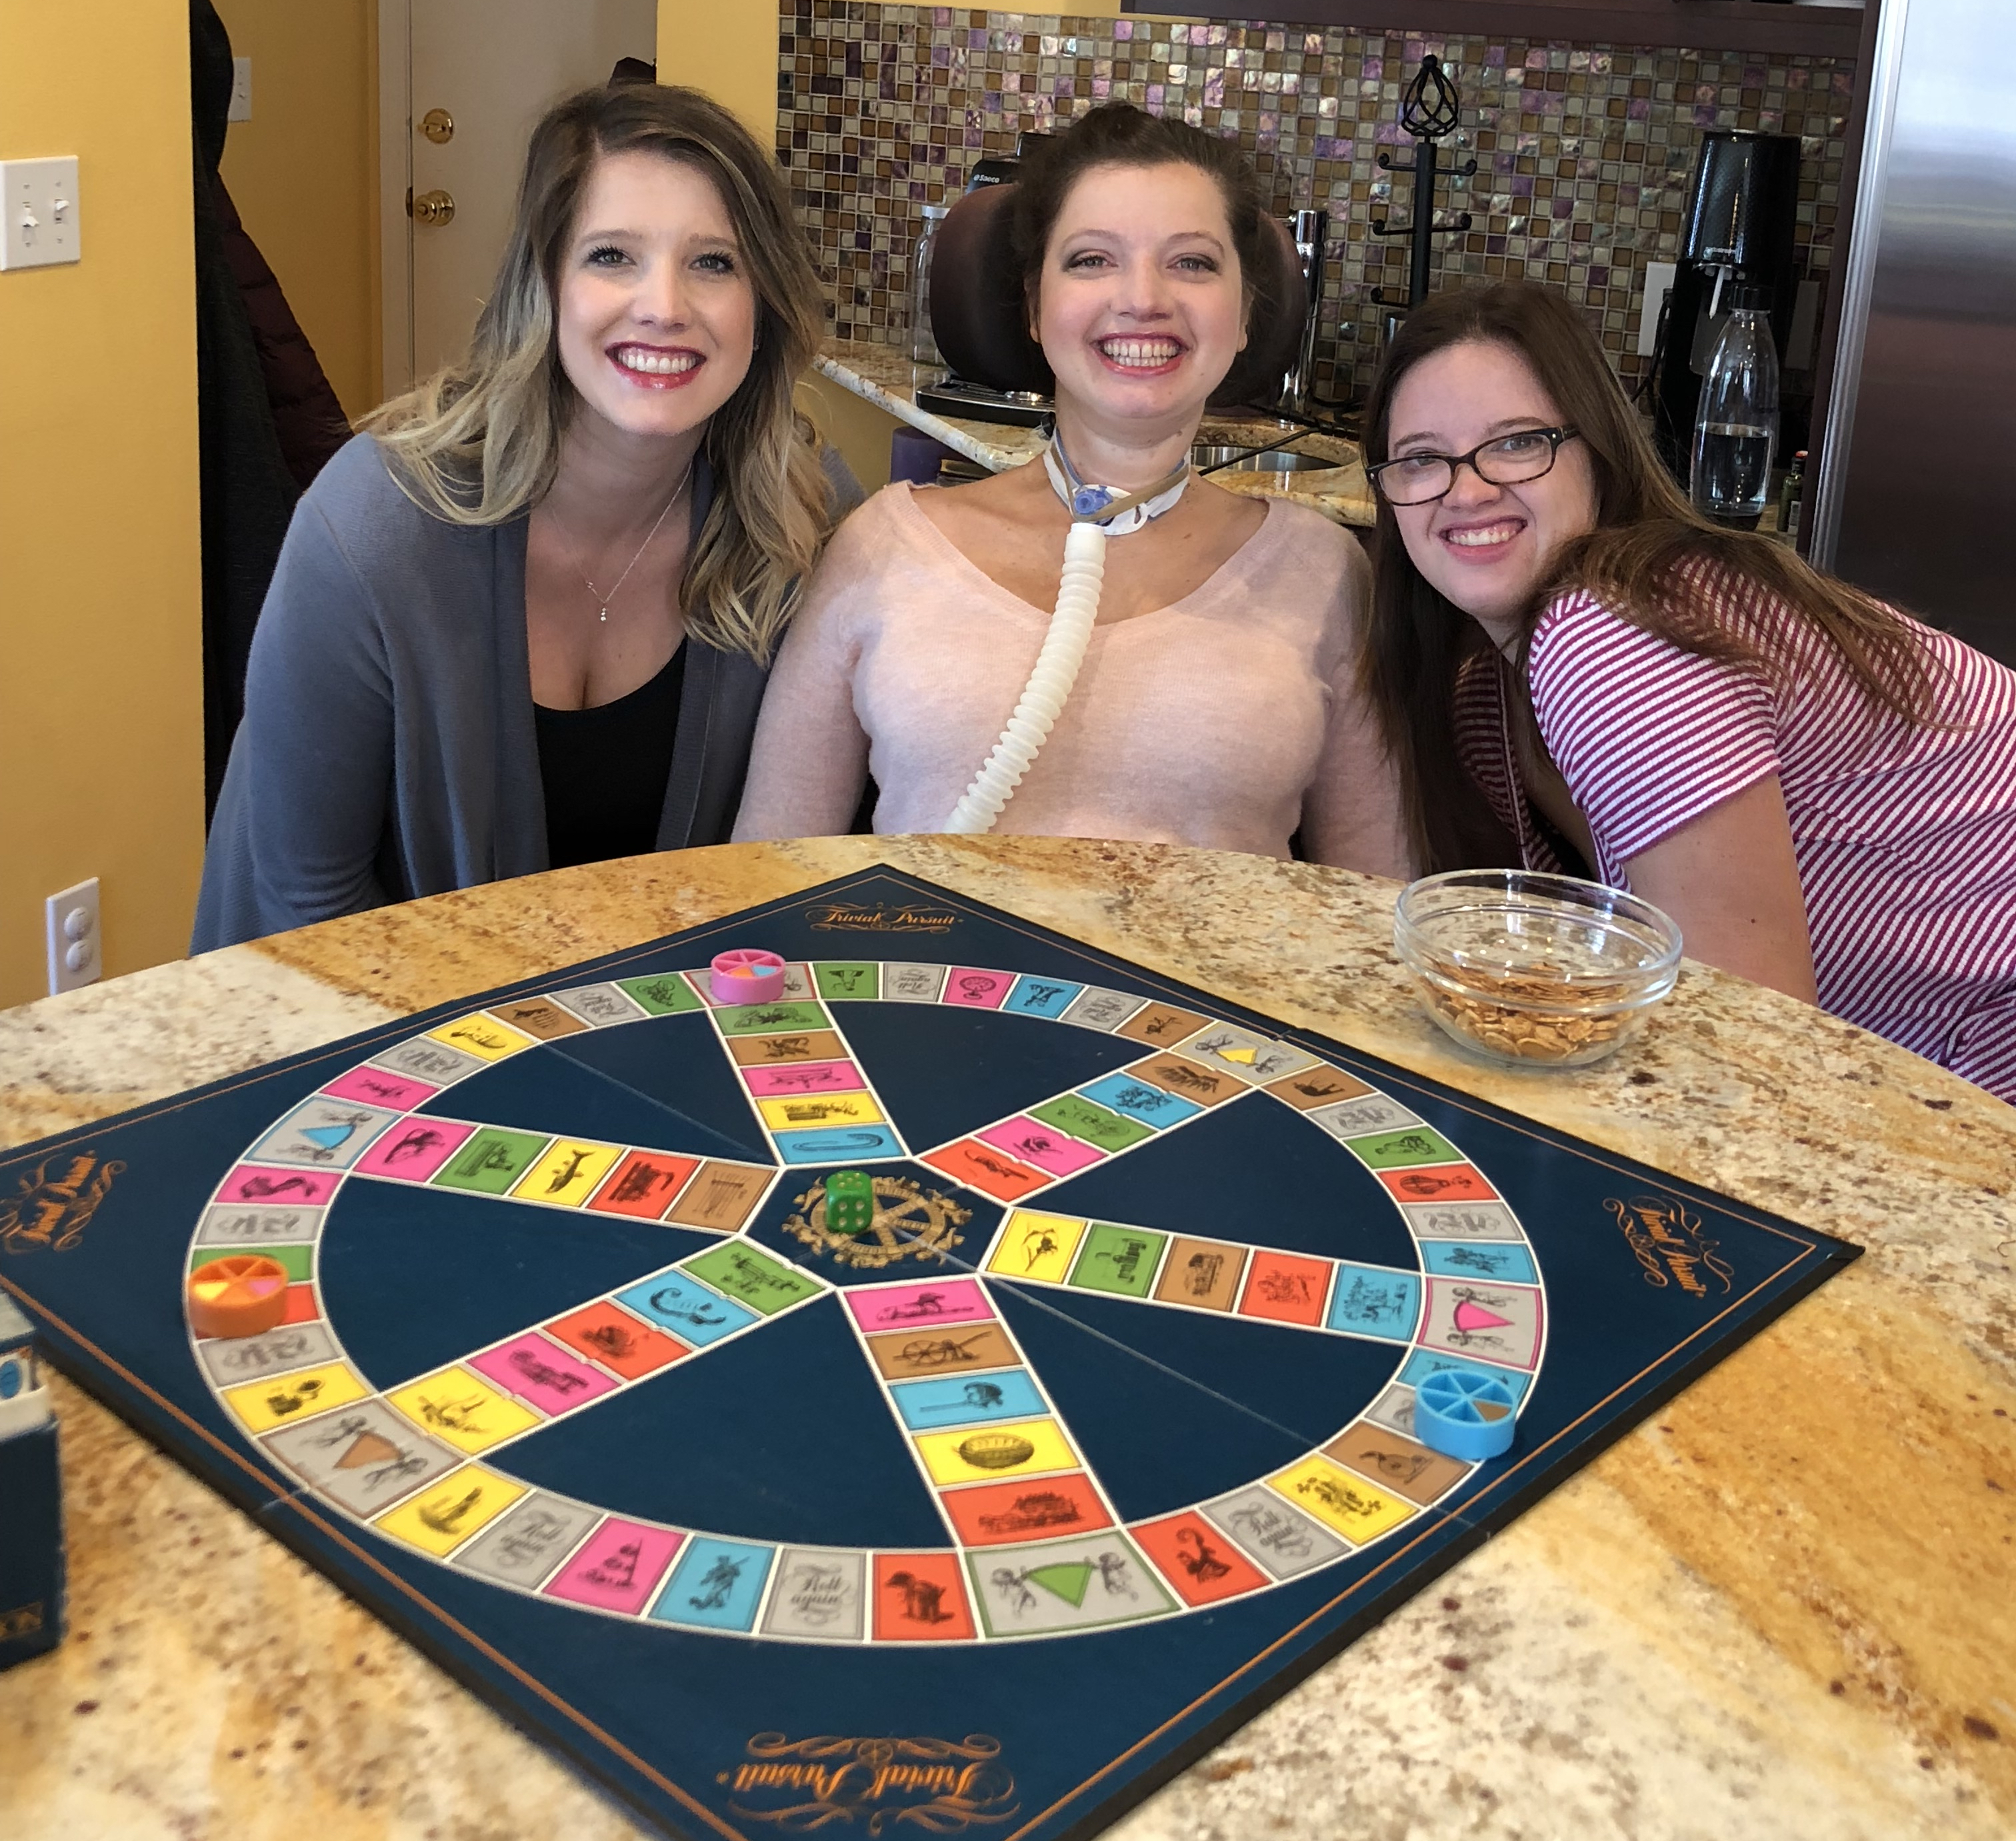 Playing Trivial Pursuit with my sisters.  It is a favorite because I love useless knowledge, but it is not quite so useless on family game night!